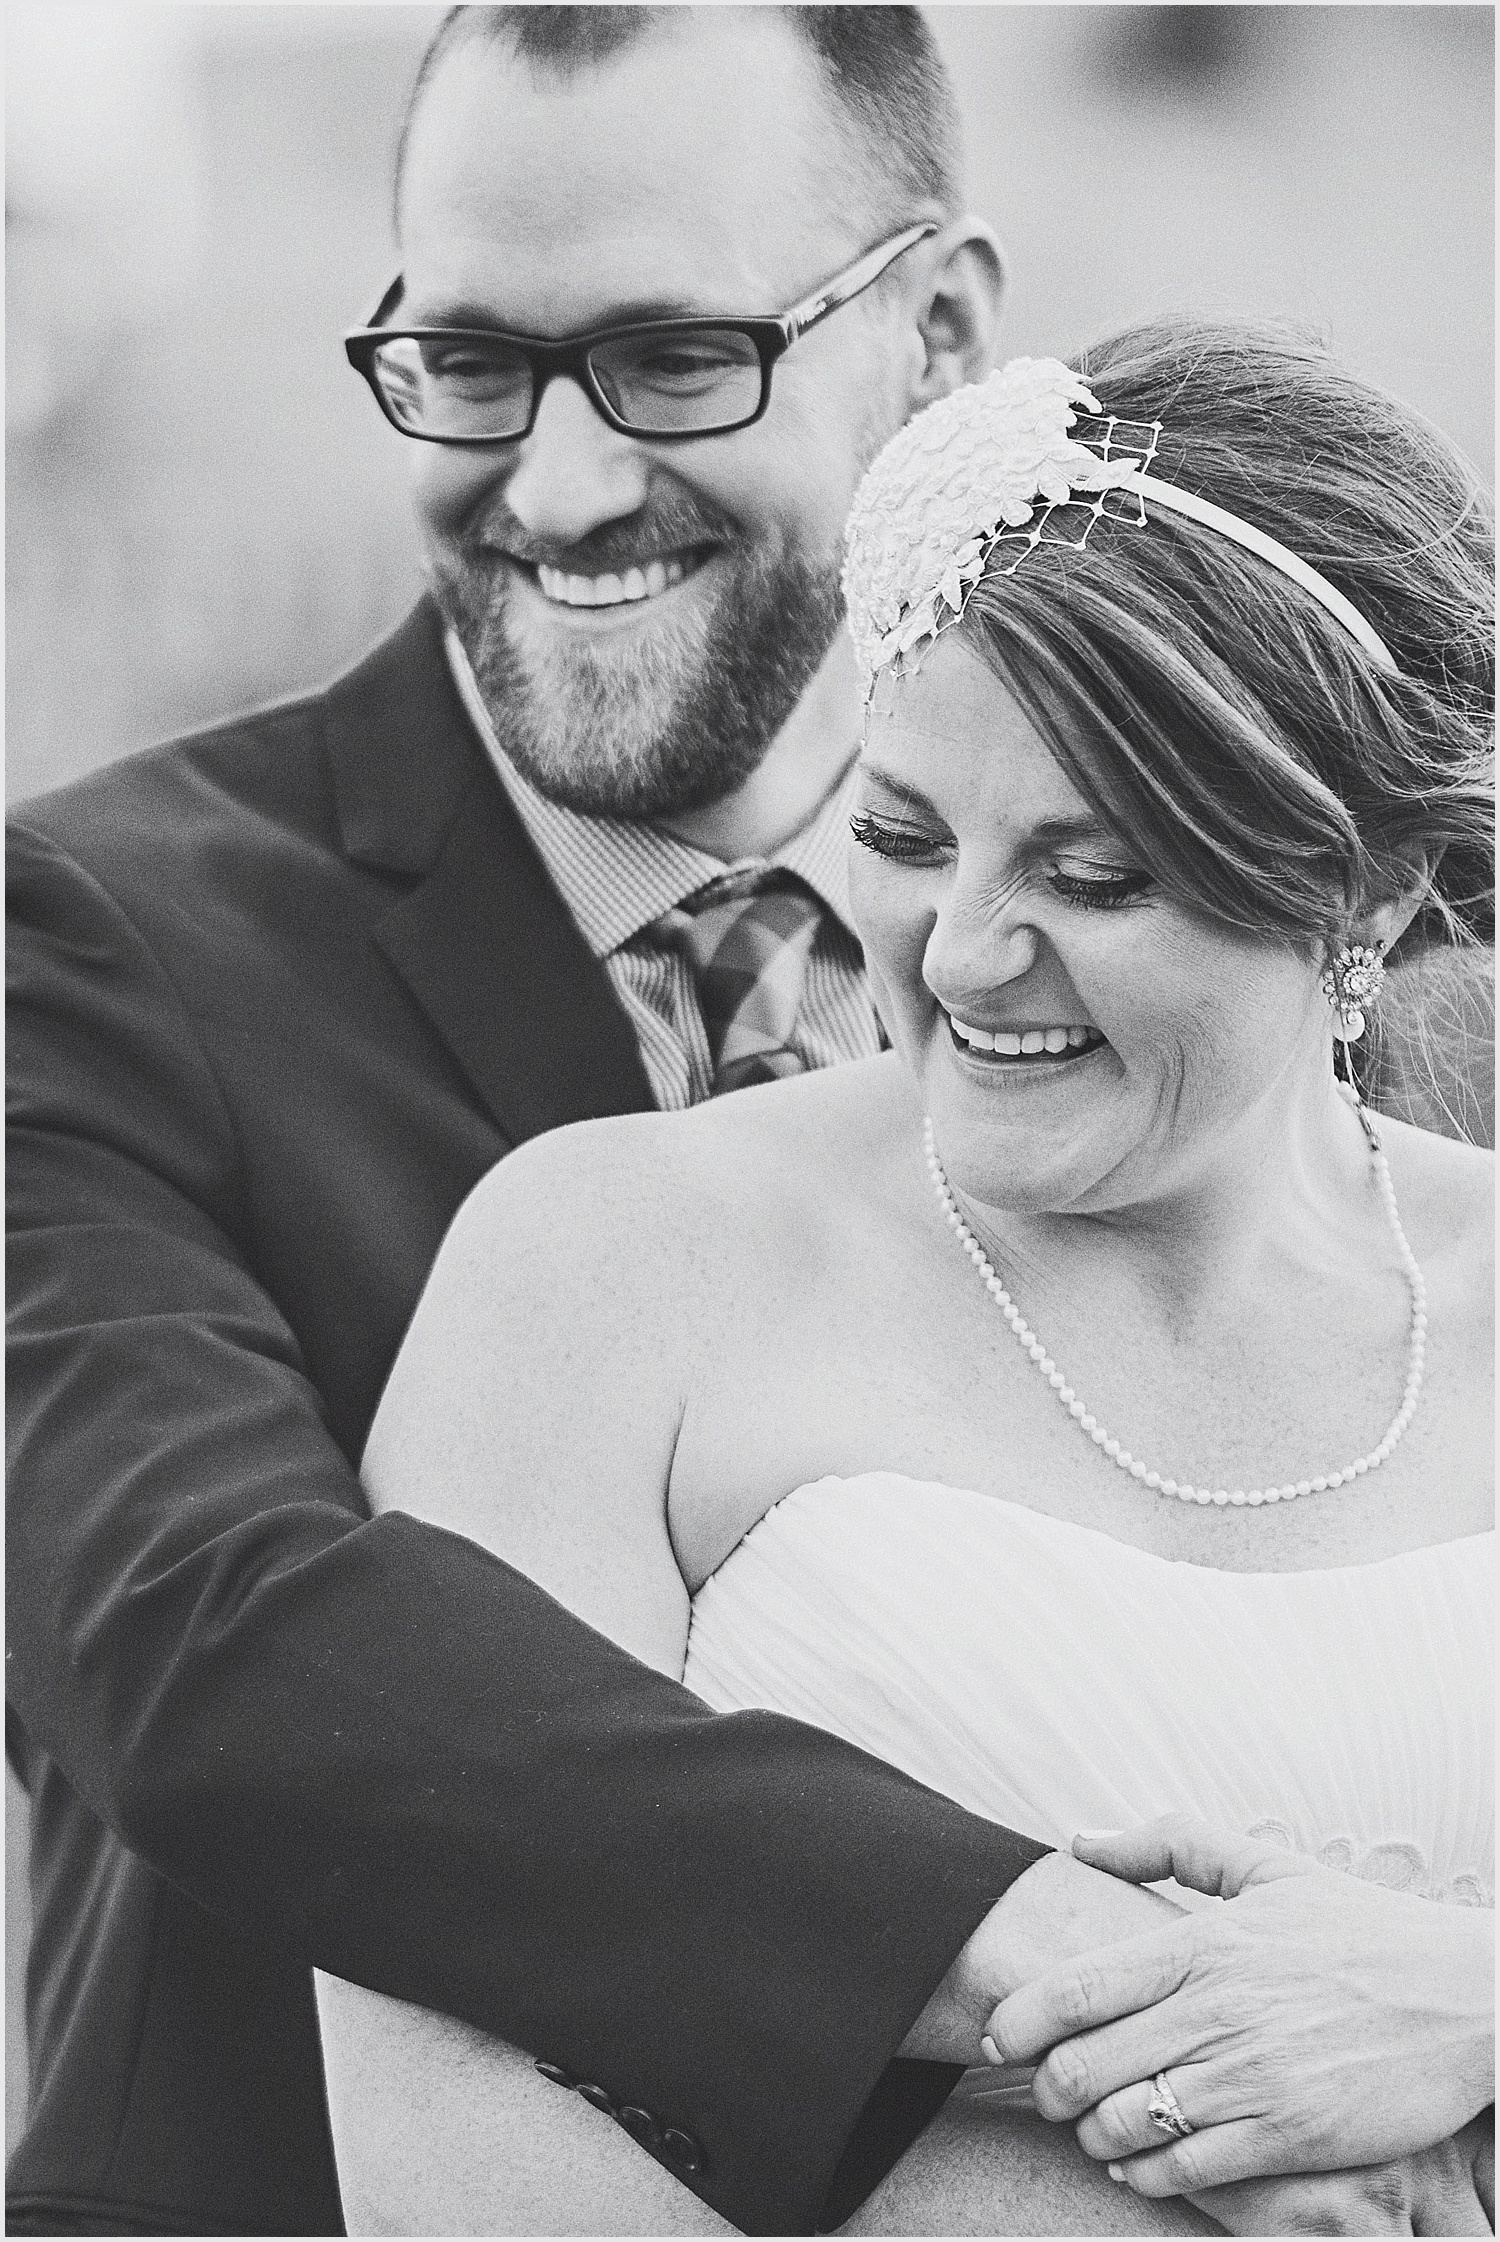 stpaul_wedding_lucas_botz_photography_026.jpg